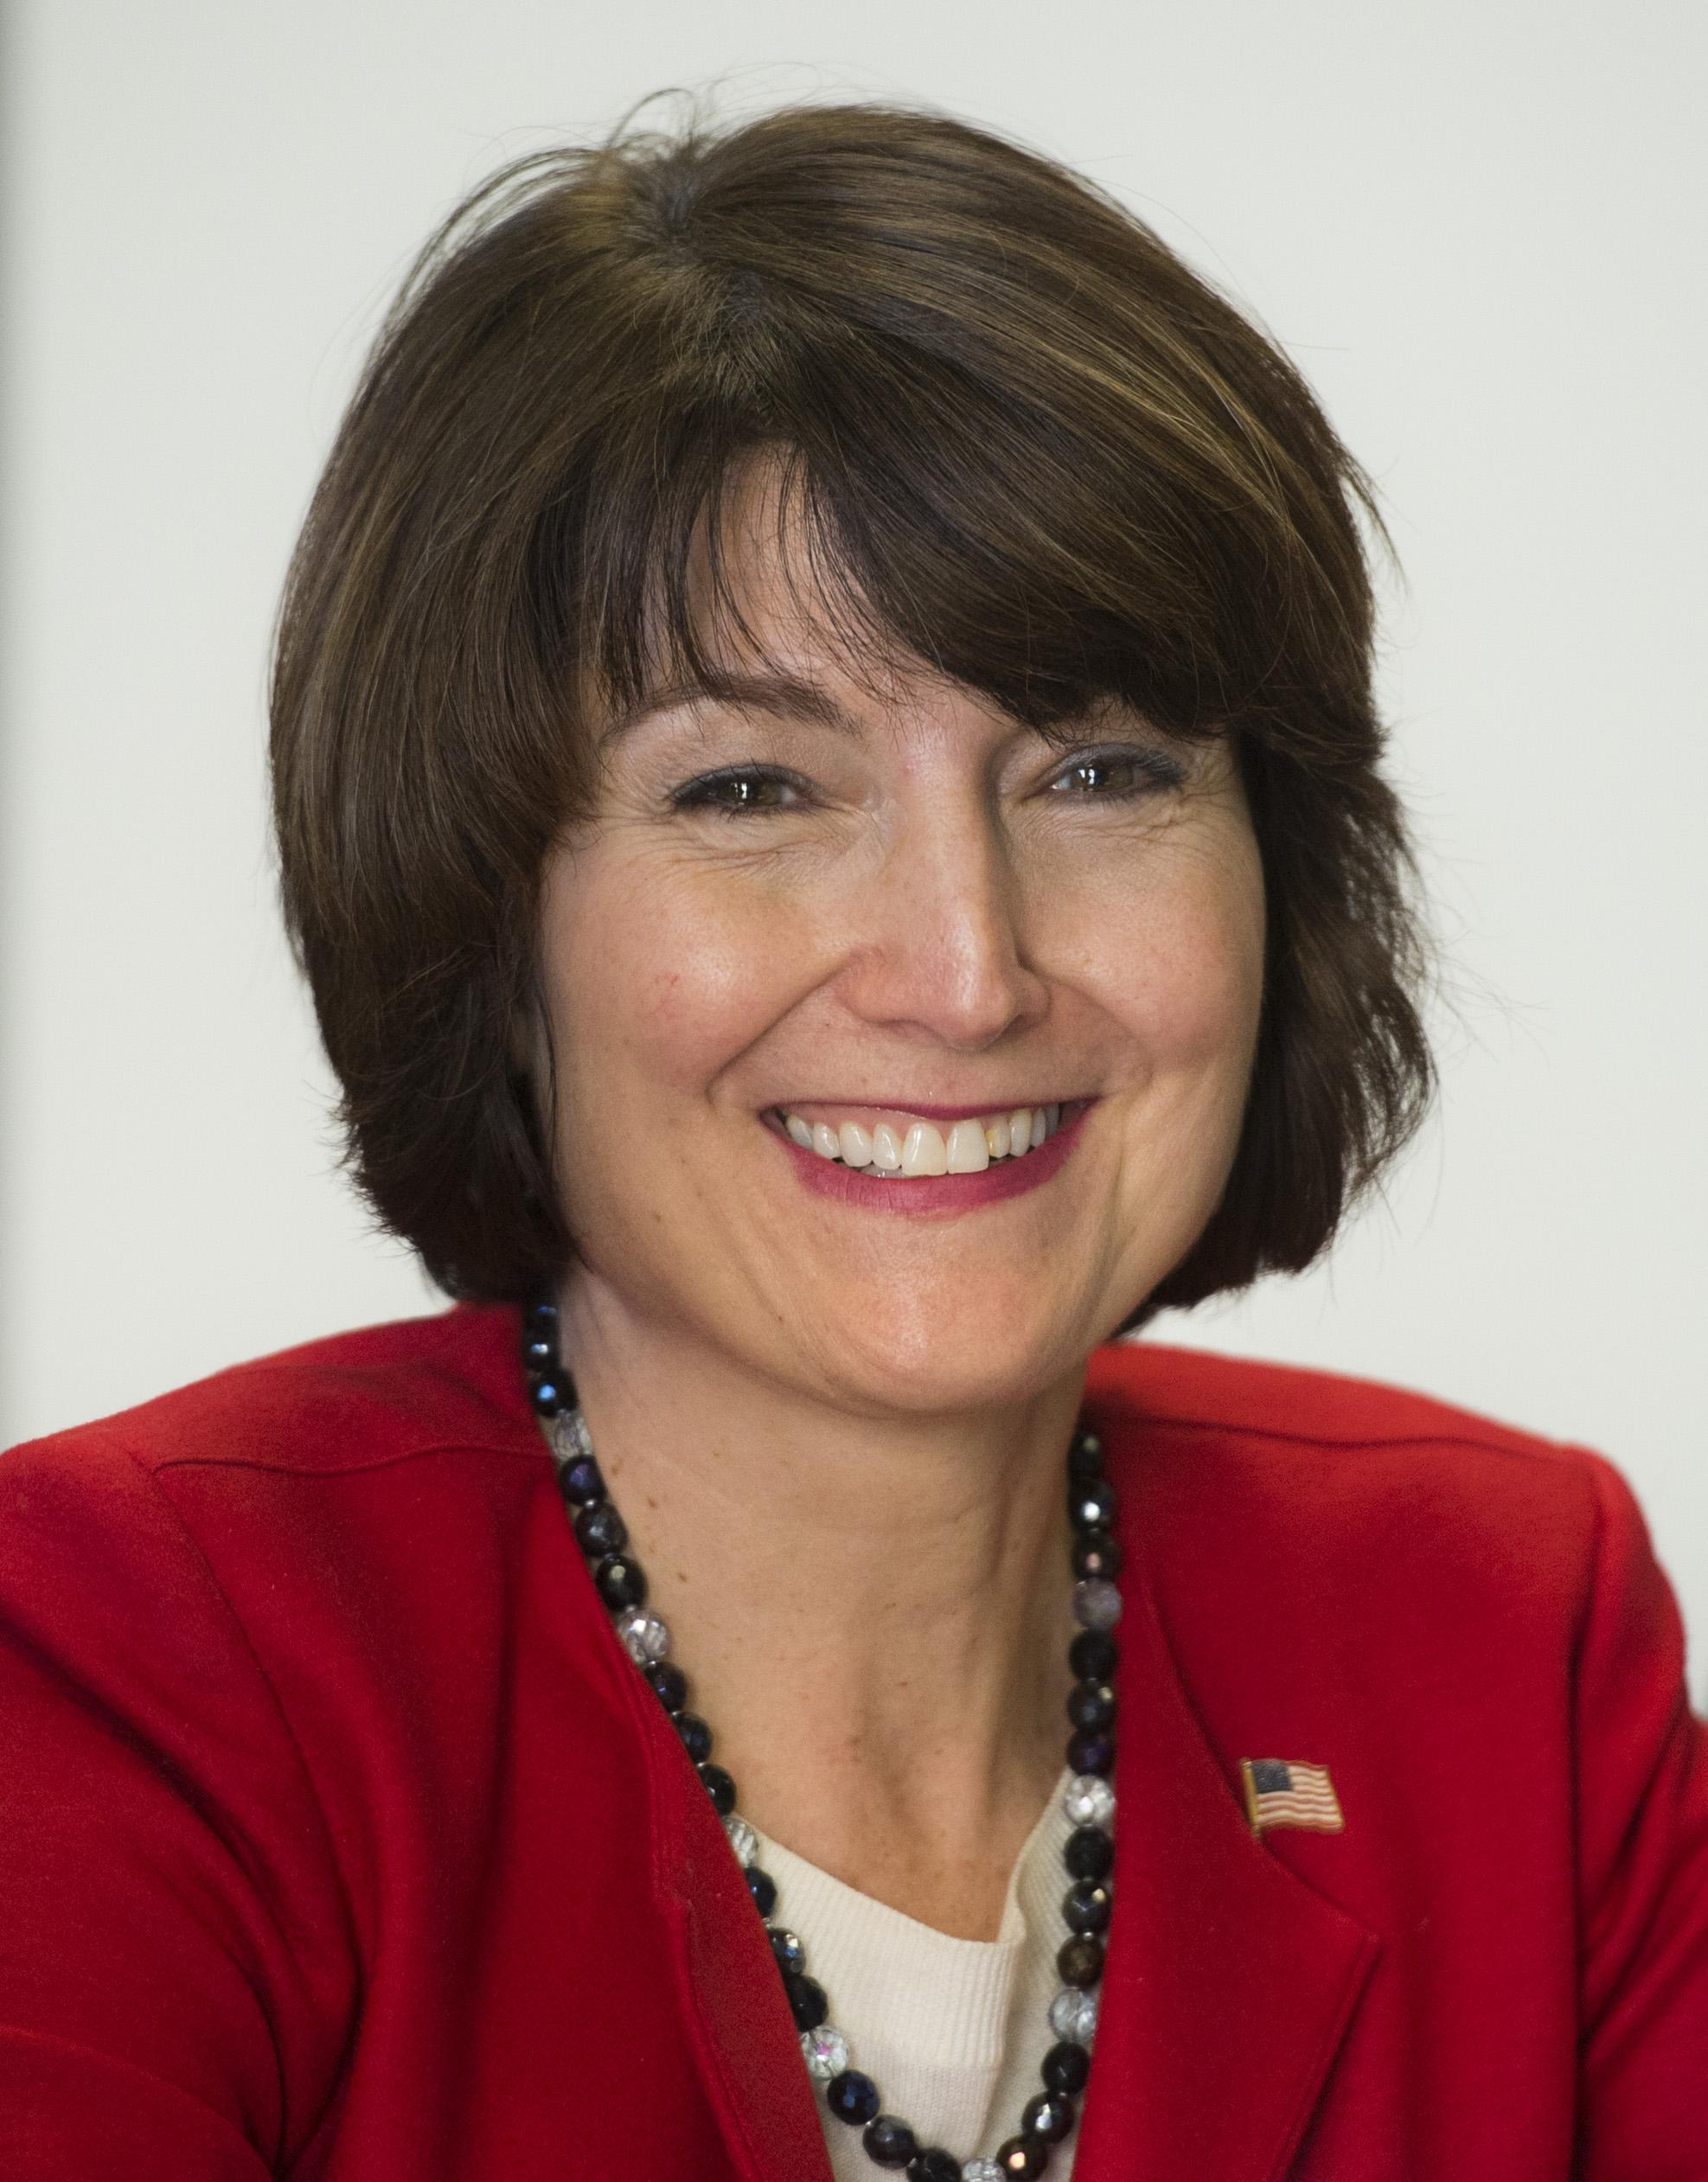 McMorris Rodgers supports recent Tax Bill